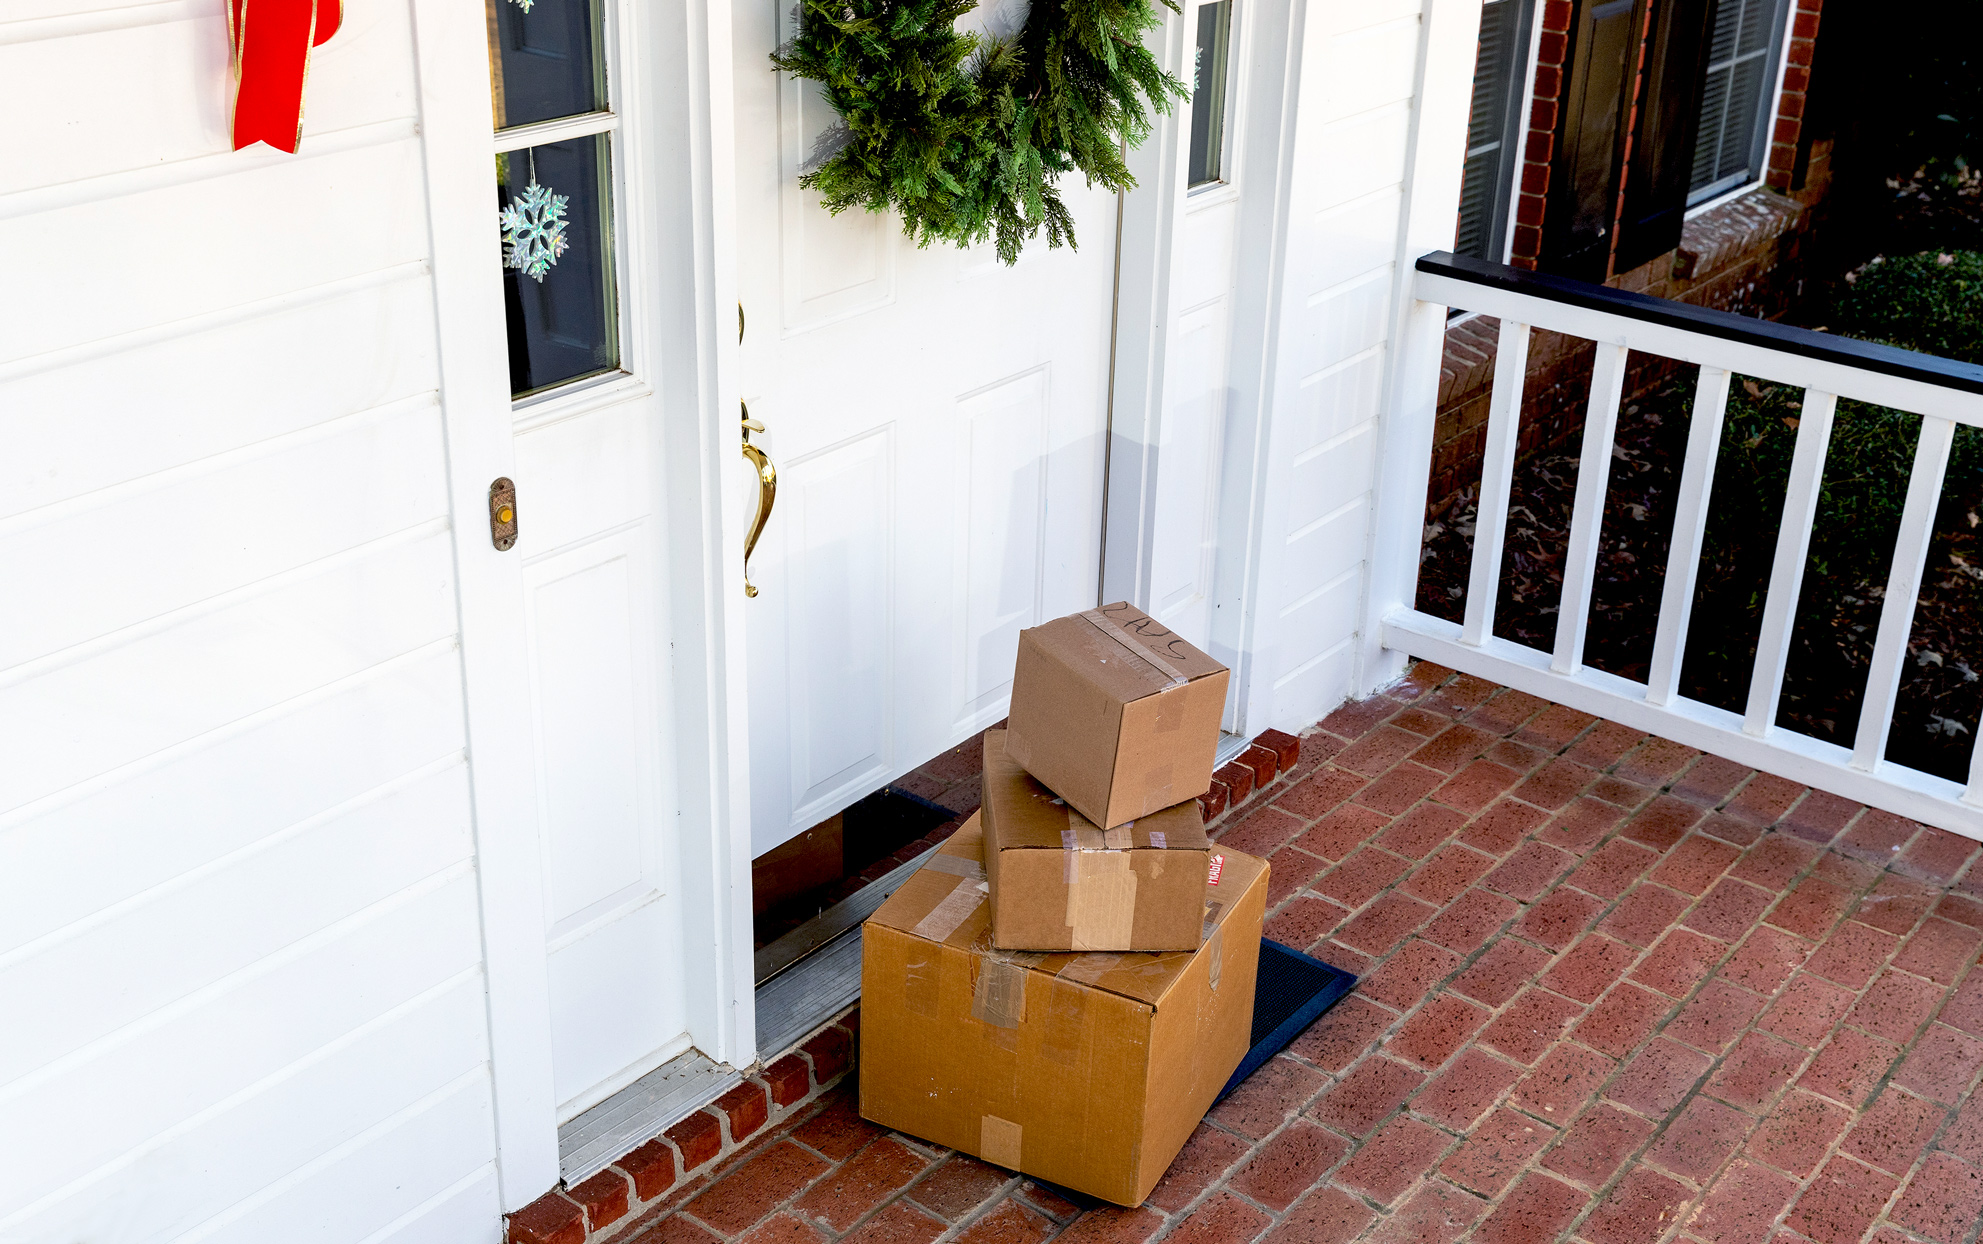 A stack of shipping boxes on a front porch